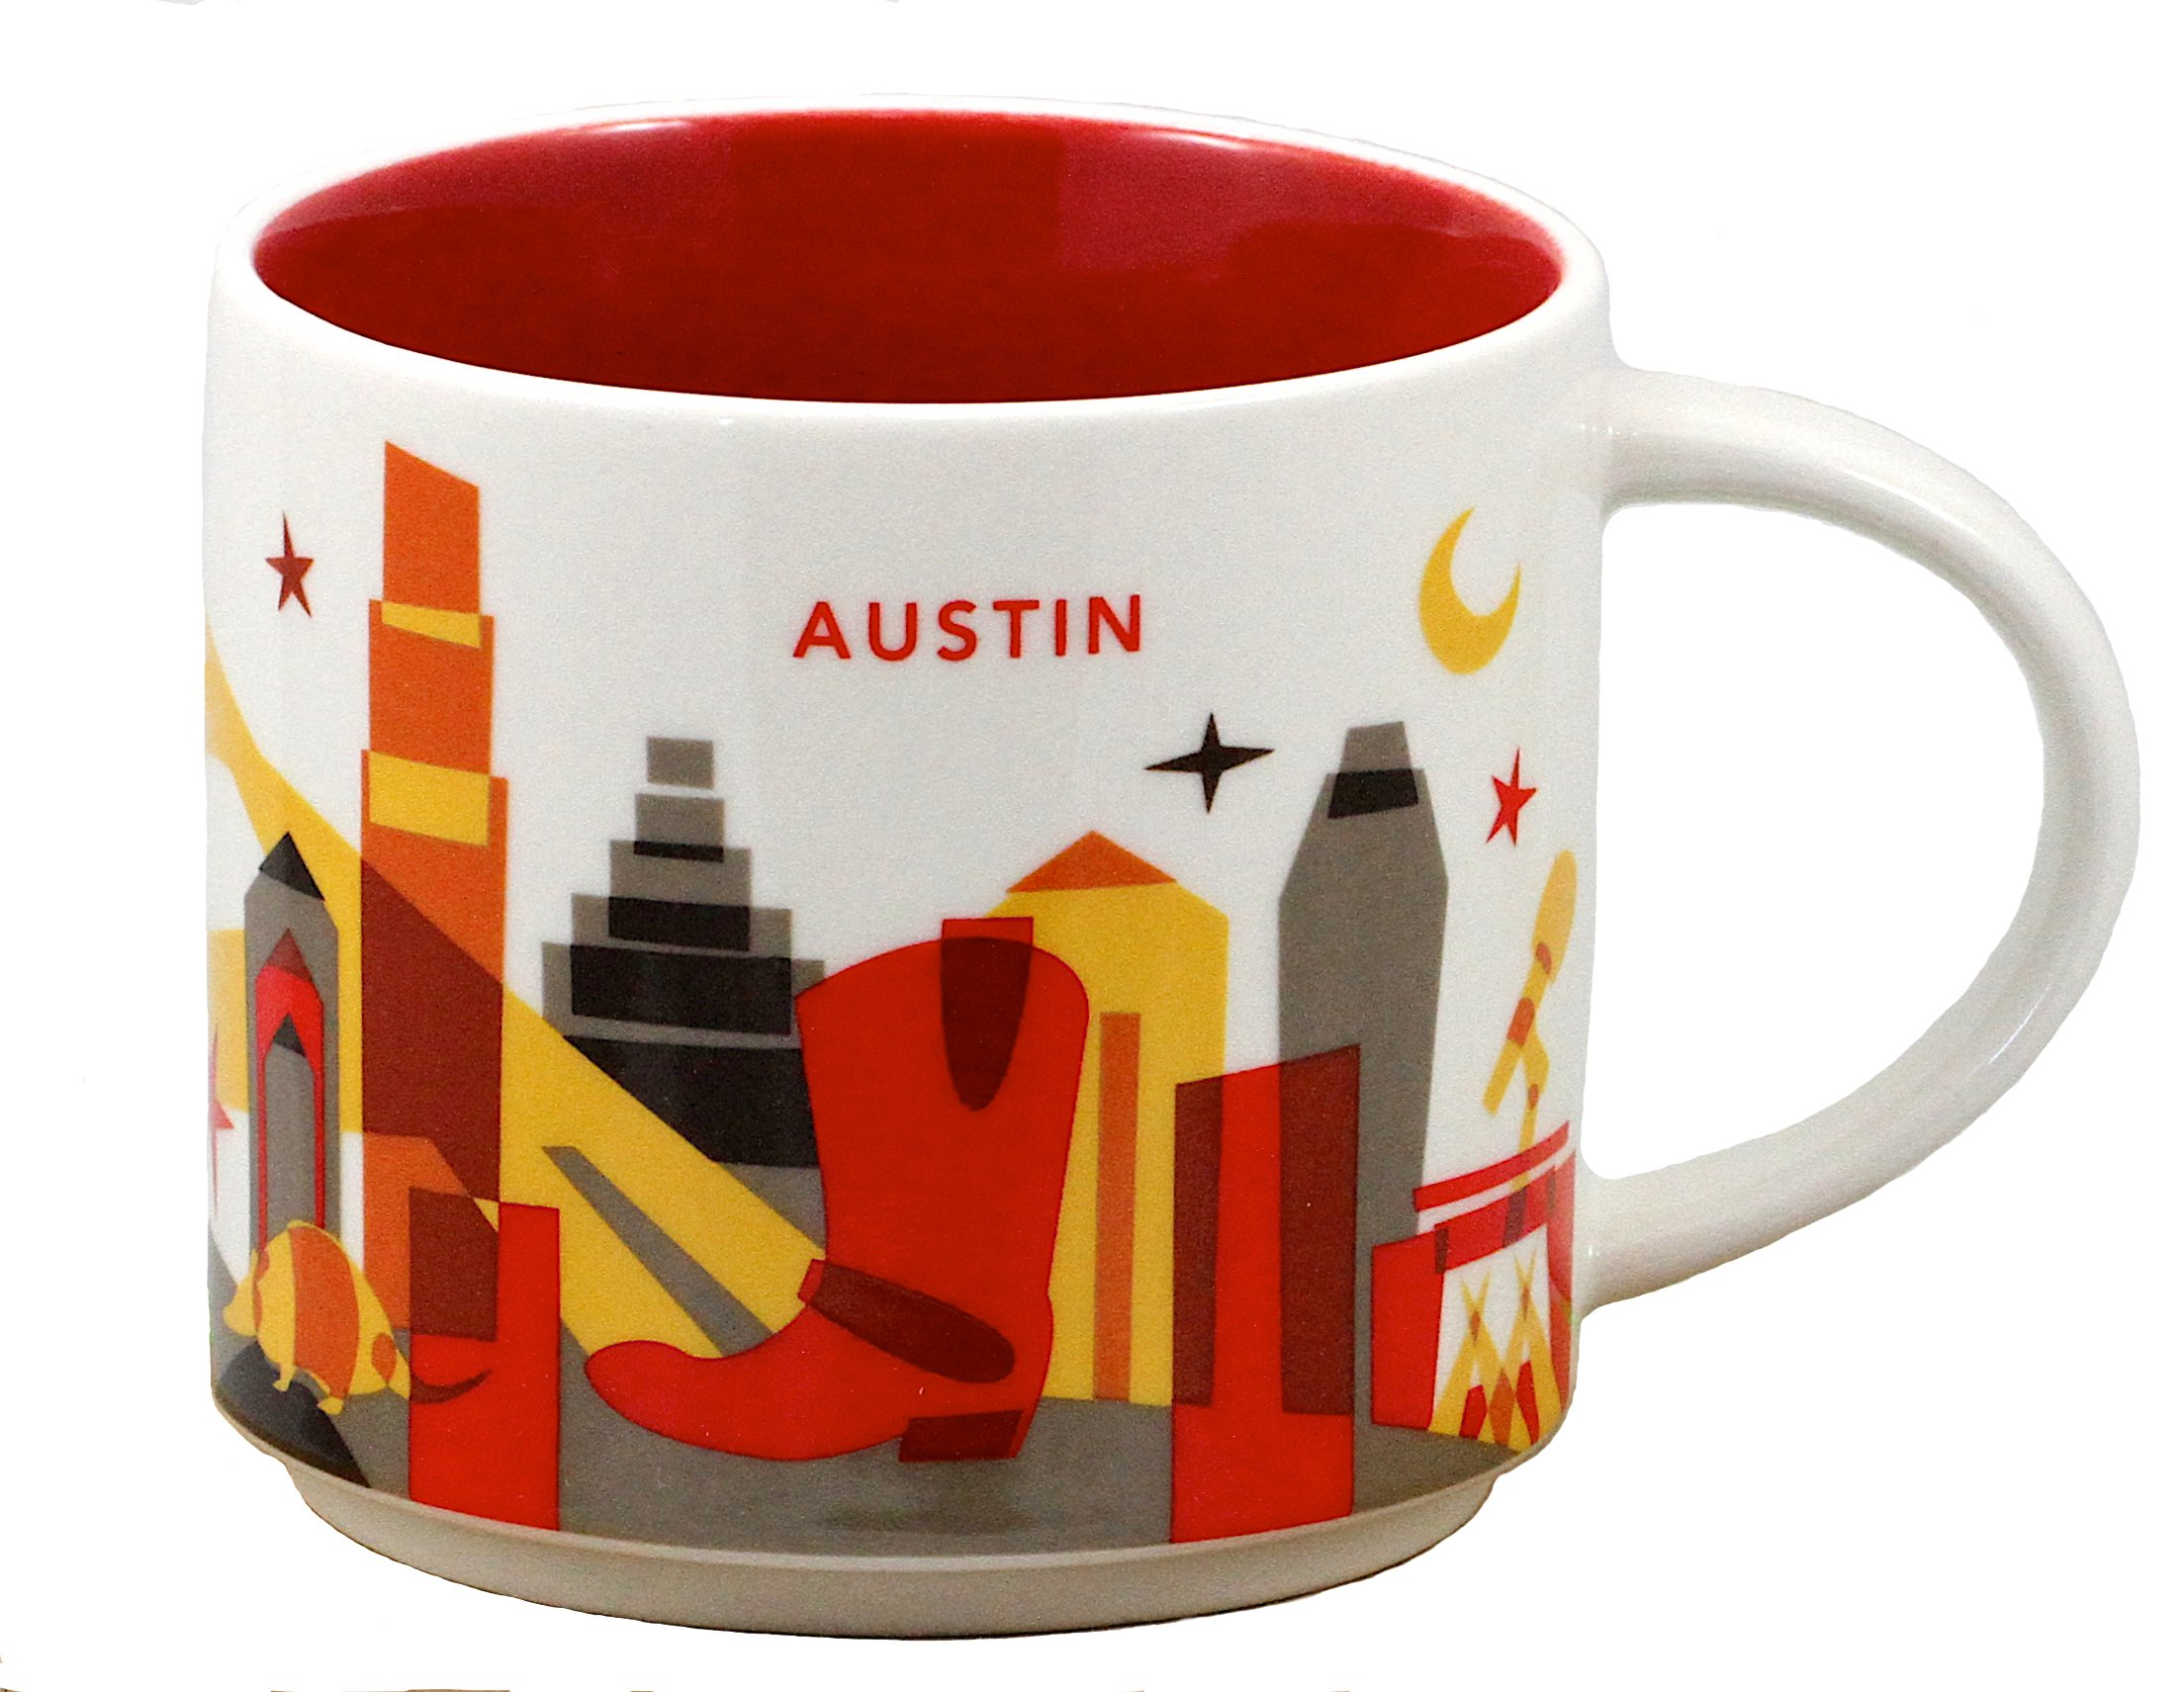 Starbucks Austin Coffee Mug - You Are Here Collection by Starbucks (Image #1)